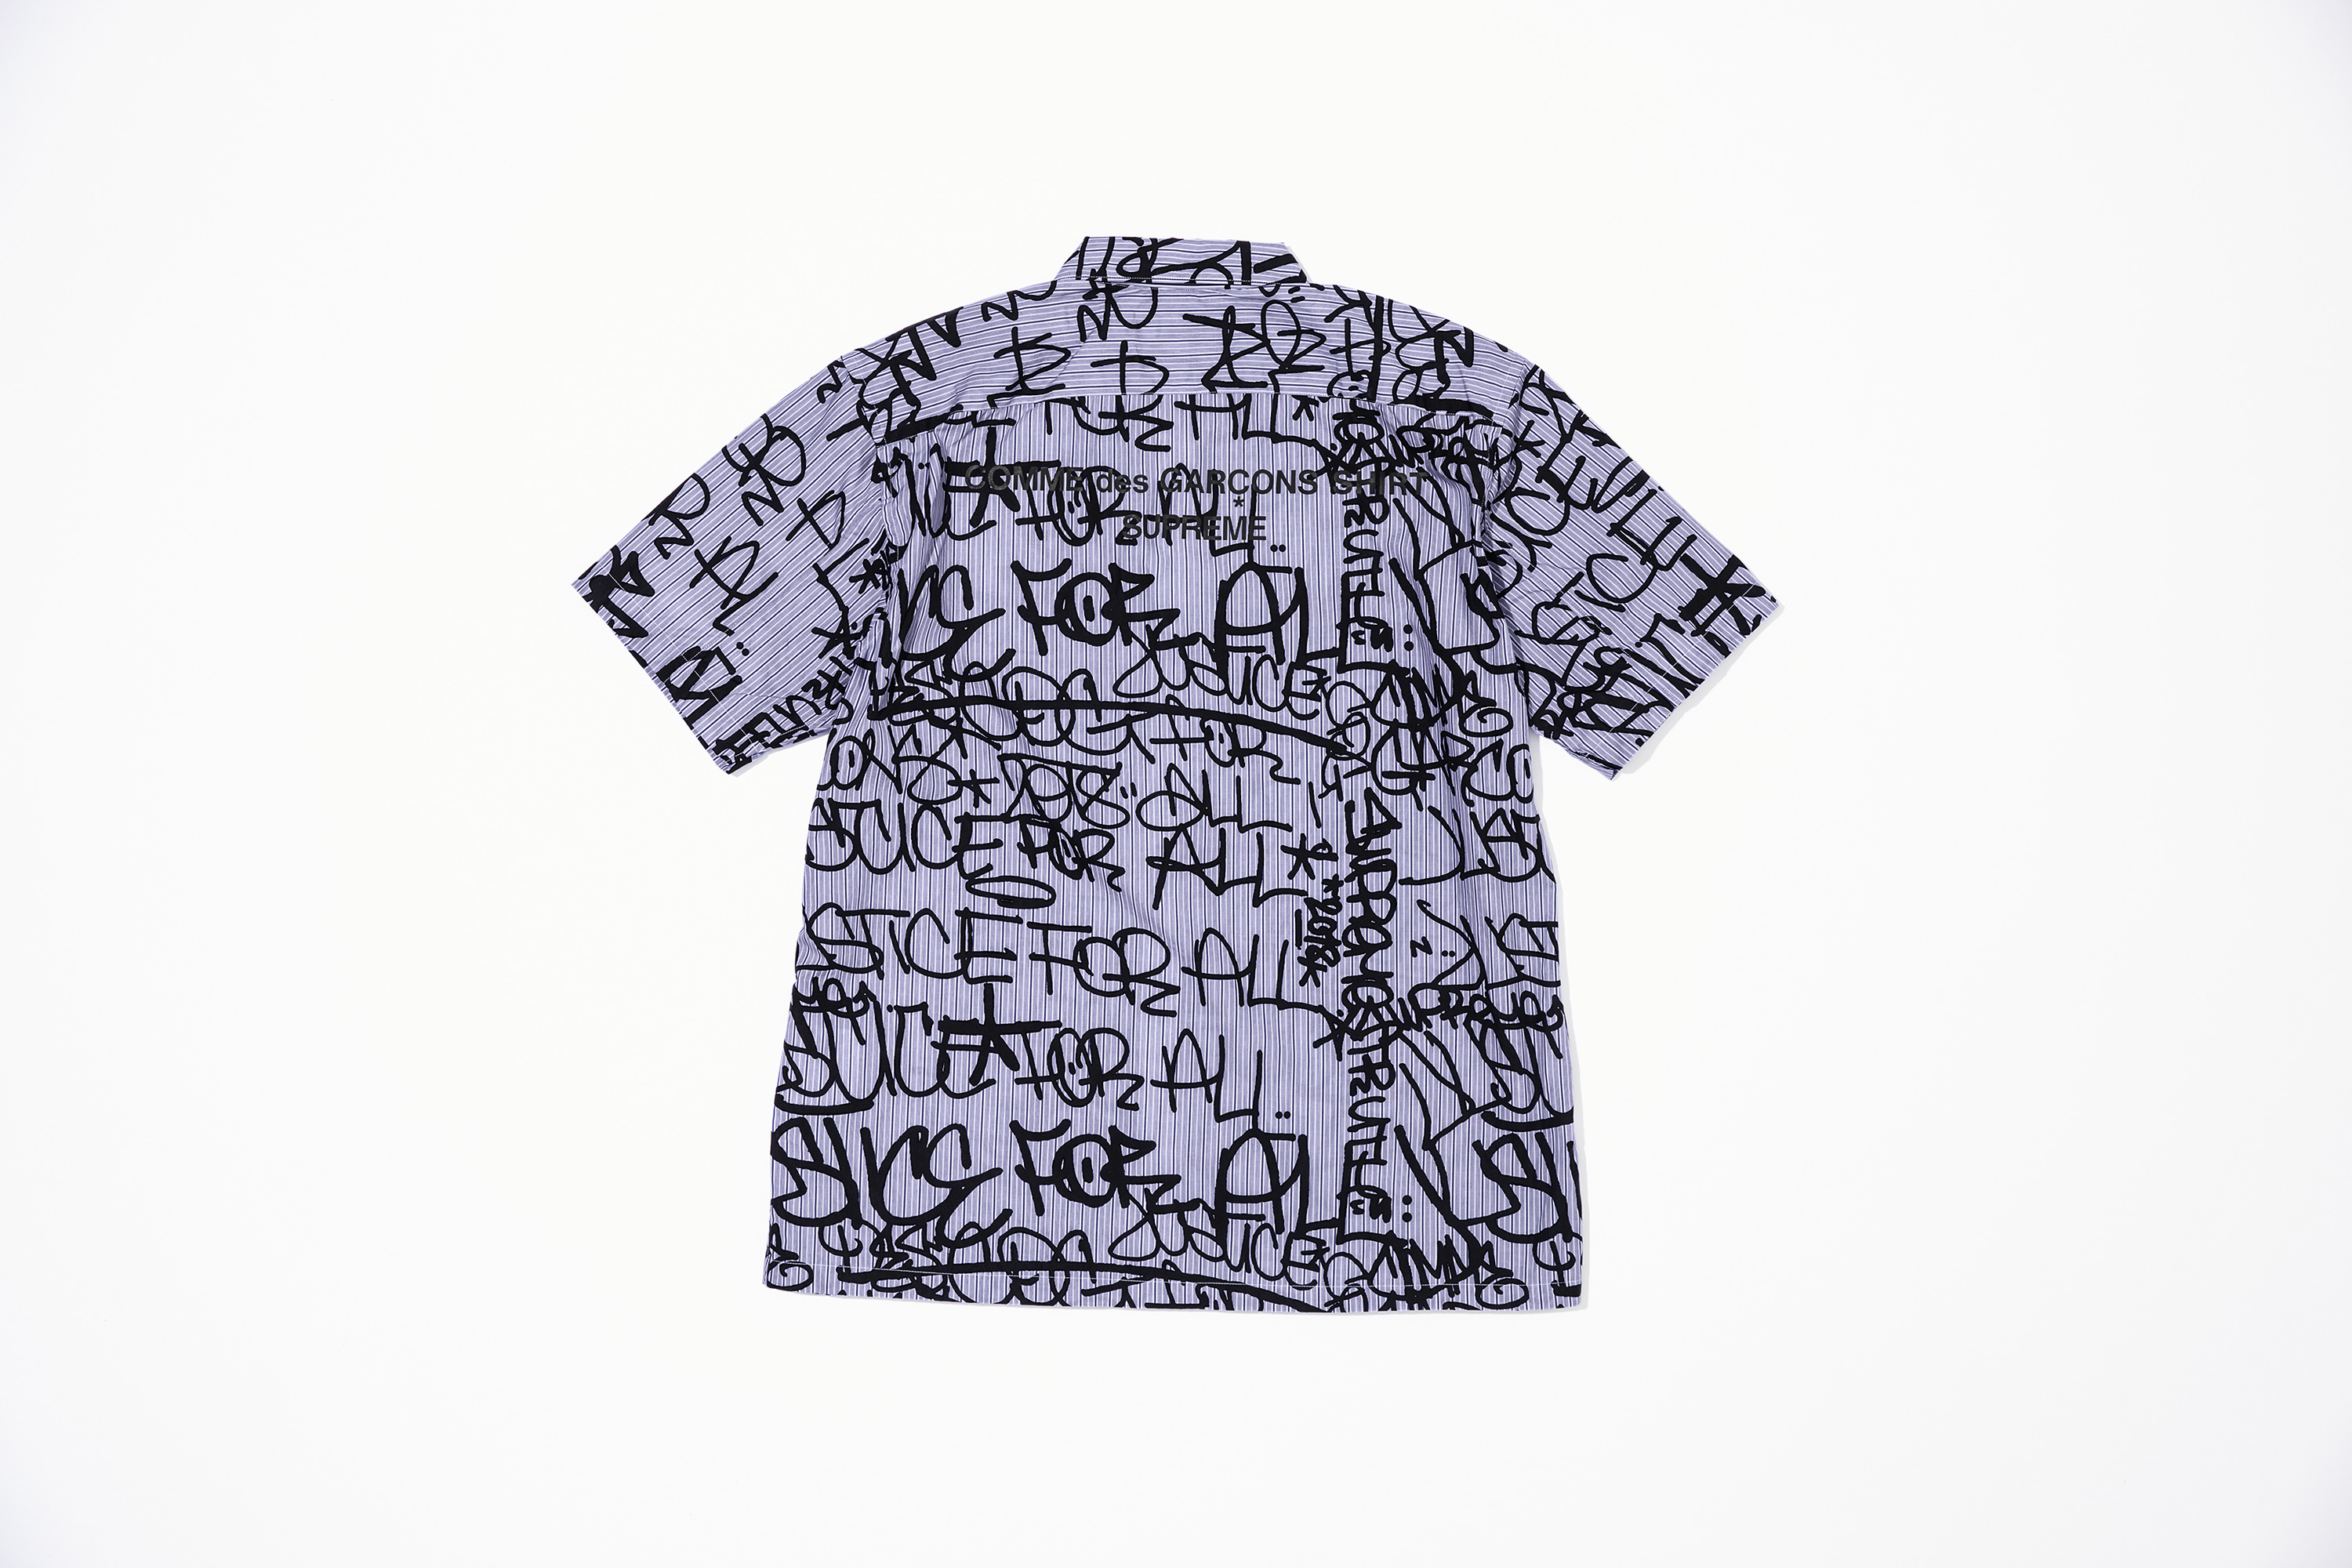 supreme-comme-des-garcons-shirt-cotton-graphic-s-s-shirt-2018aw-collaboration-release-20180915-week4